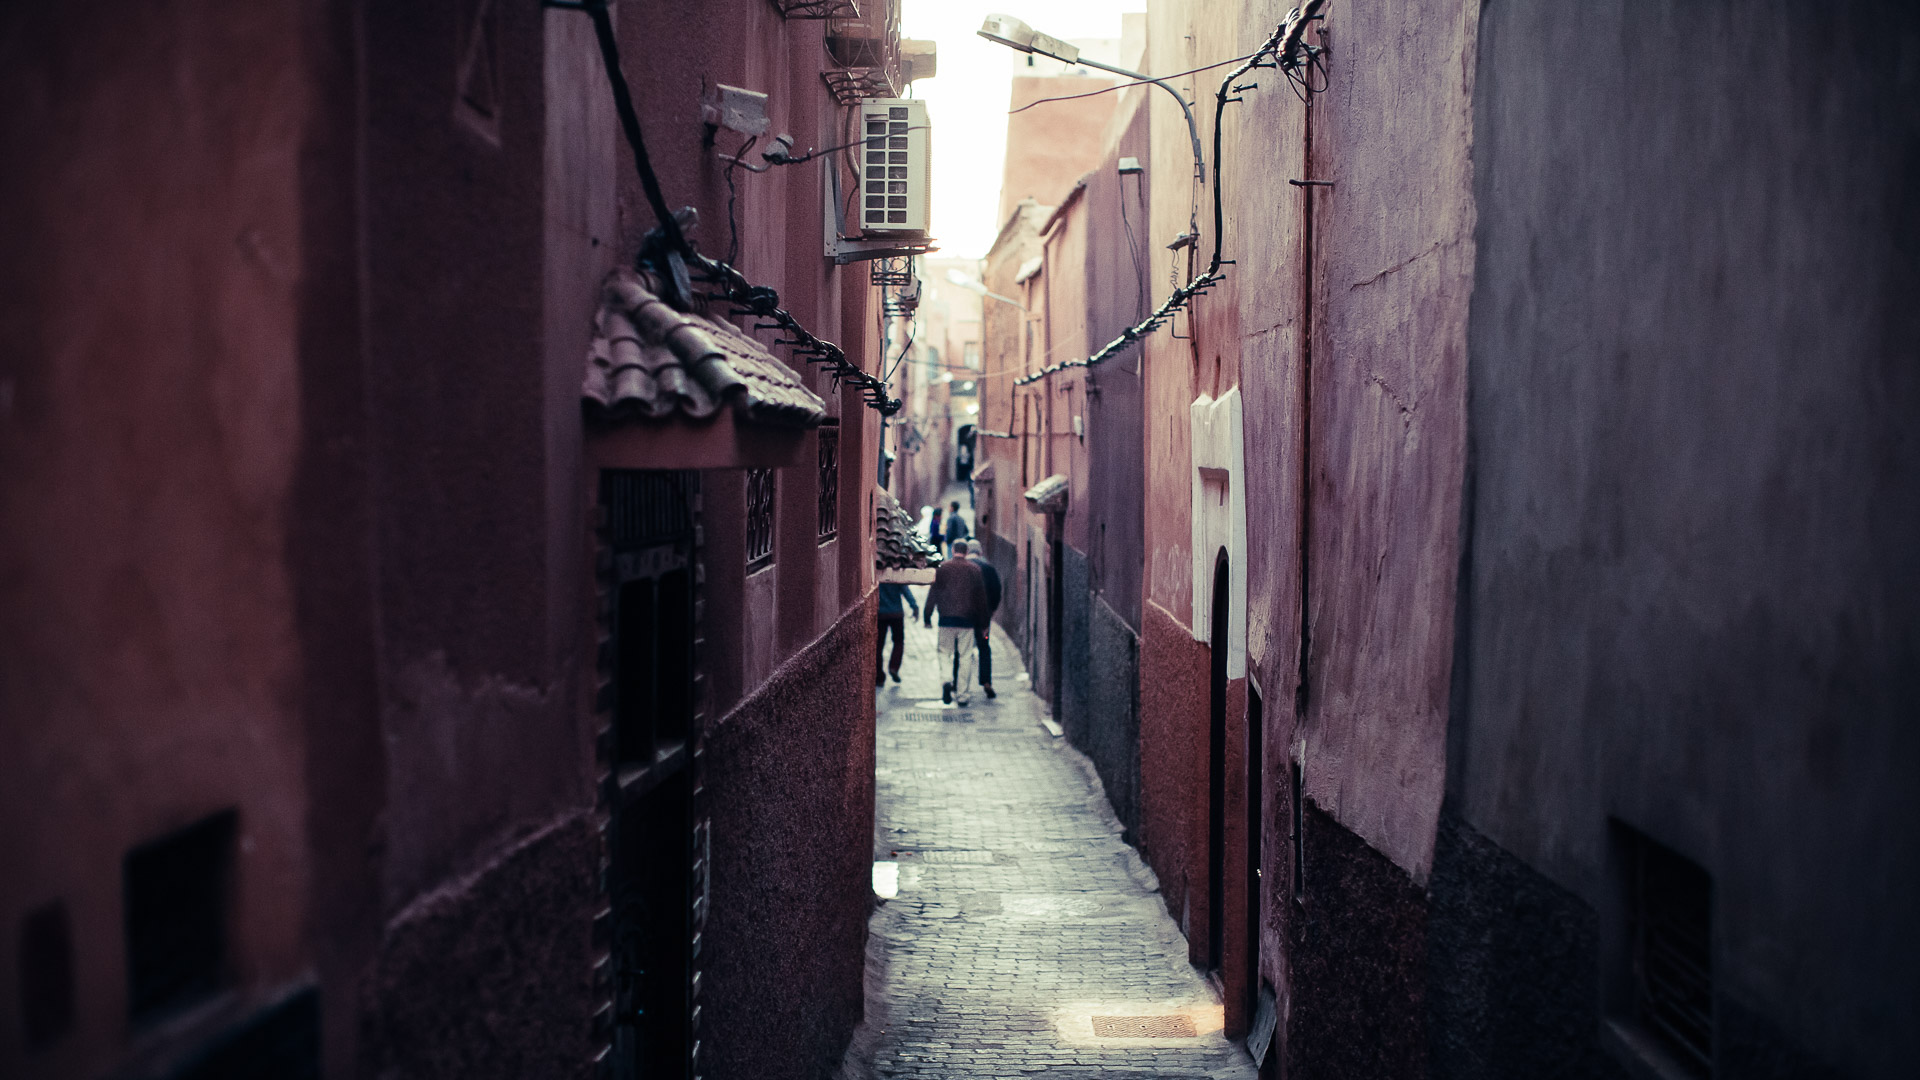 Looking down a side street in Marrakech